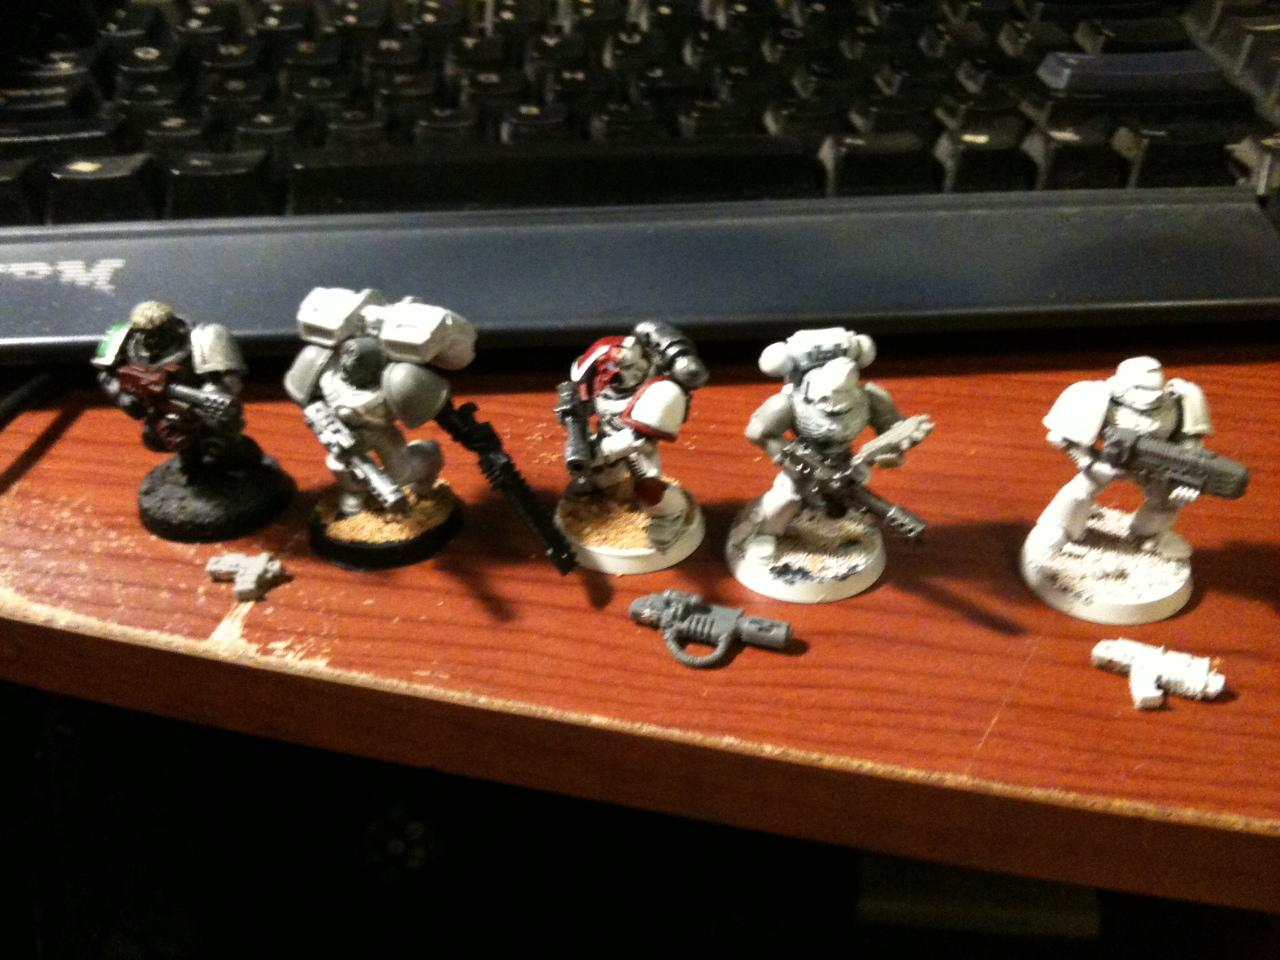 Assault, Bolt Pistol, Boltgun, Flamer, Magnet, Meltagun, Plasma, Power Armor, Space Marines, Tactical, Warhammer 40,000